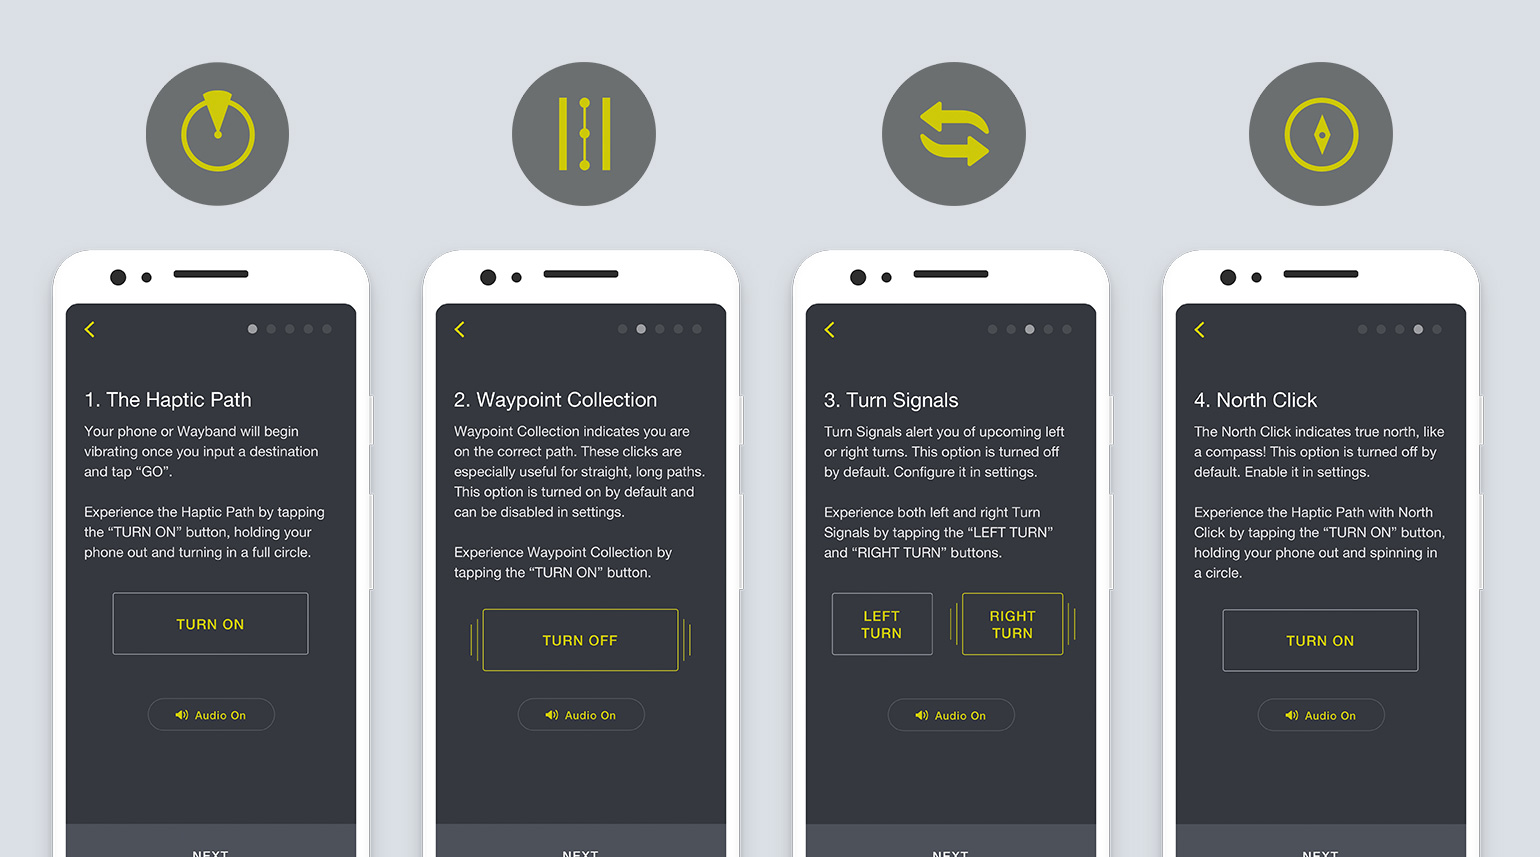 A screen by screen walk through guiding first time users through the UX of the companion app and wearable device.